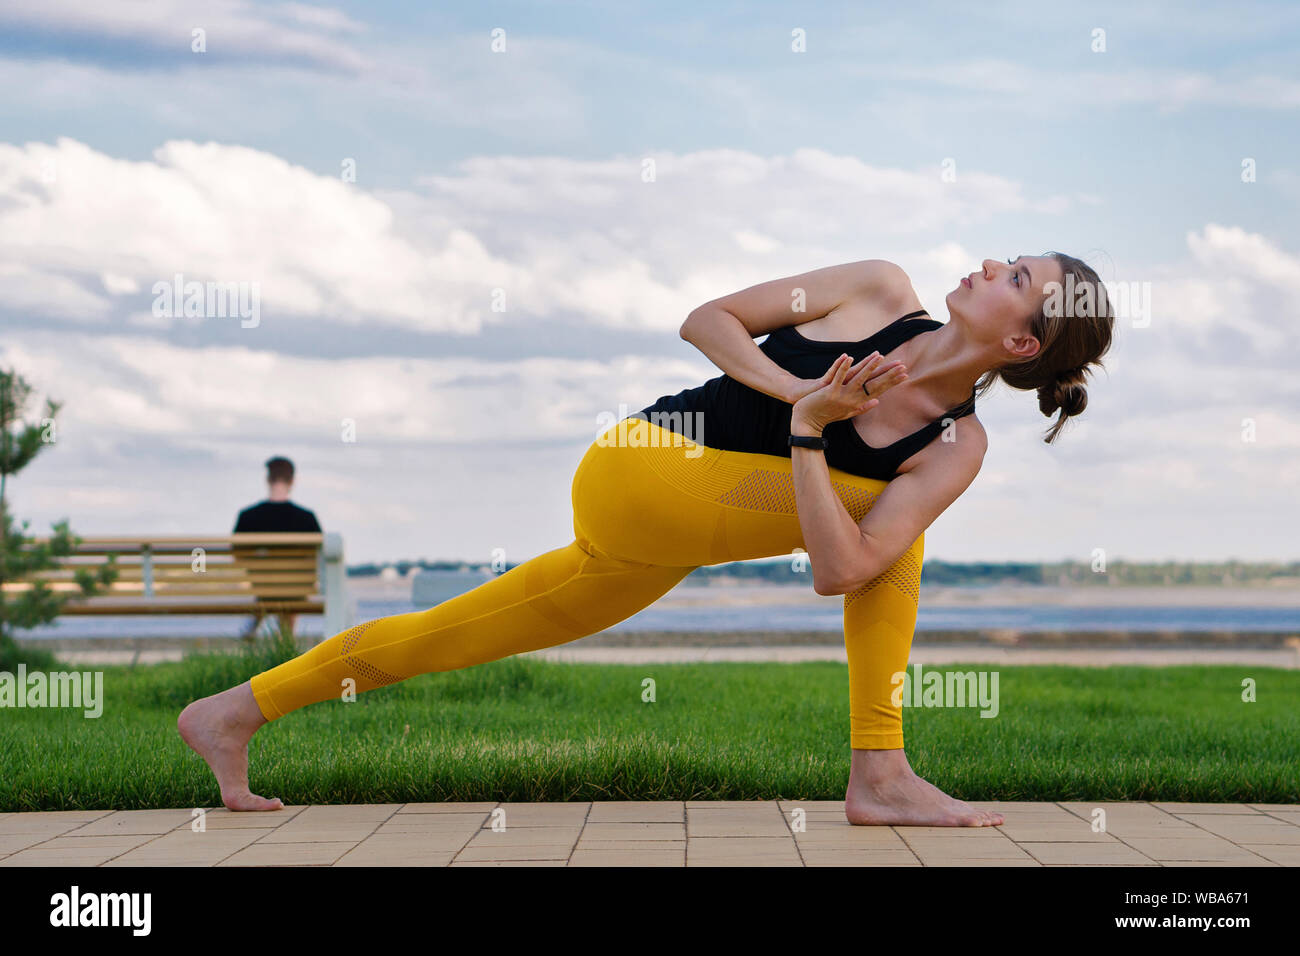 Yoga time. Woman yoga instructor. Handsome athletic woman doing yoga asanas in the park. Enjoy pilates. Girl do muscle stretching. Stock Photo